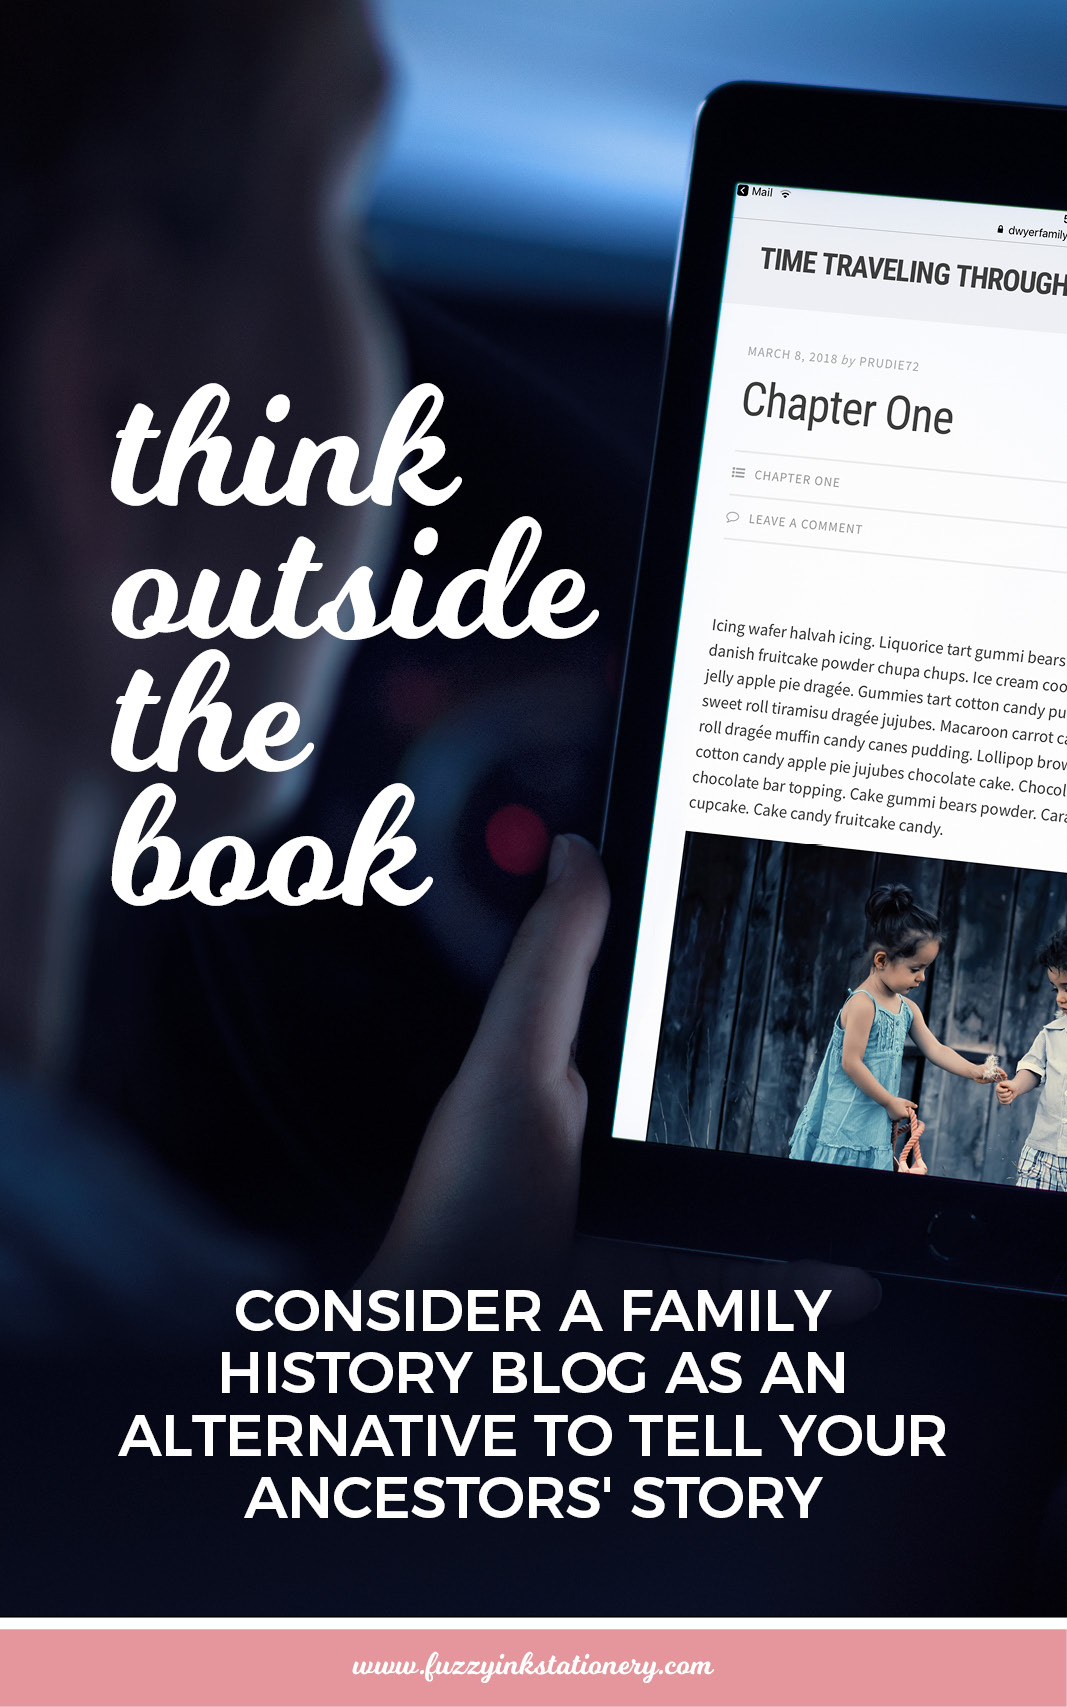 Think outside the book and consider a family history blog as an alternative way to tell your ancestors' story